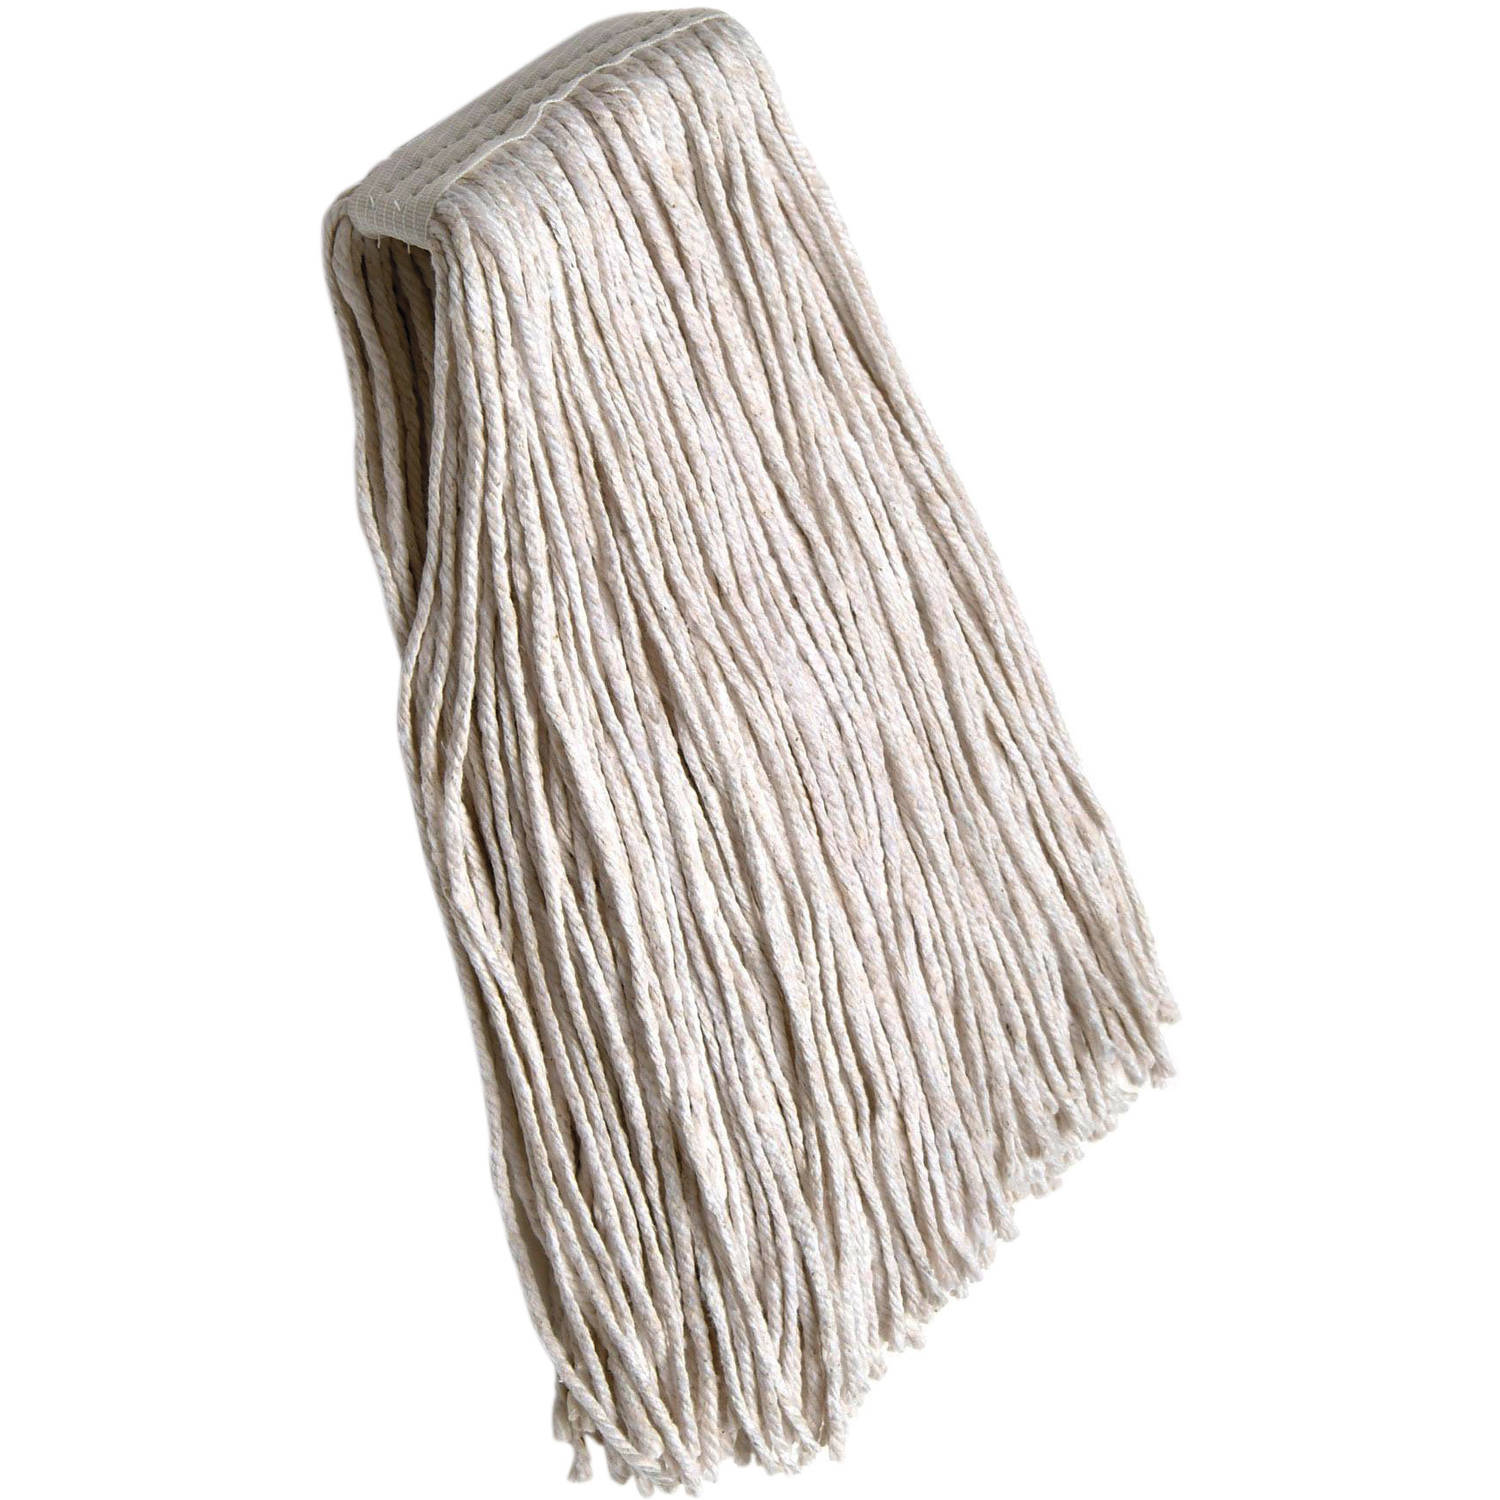 Laitner Brush Company #24 Cotton Mop Head by Laitner Brush Company